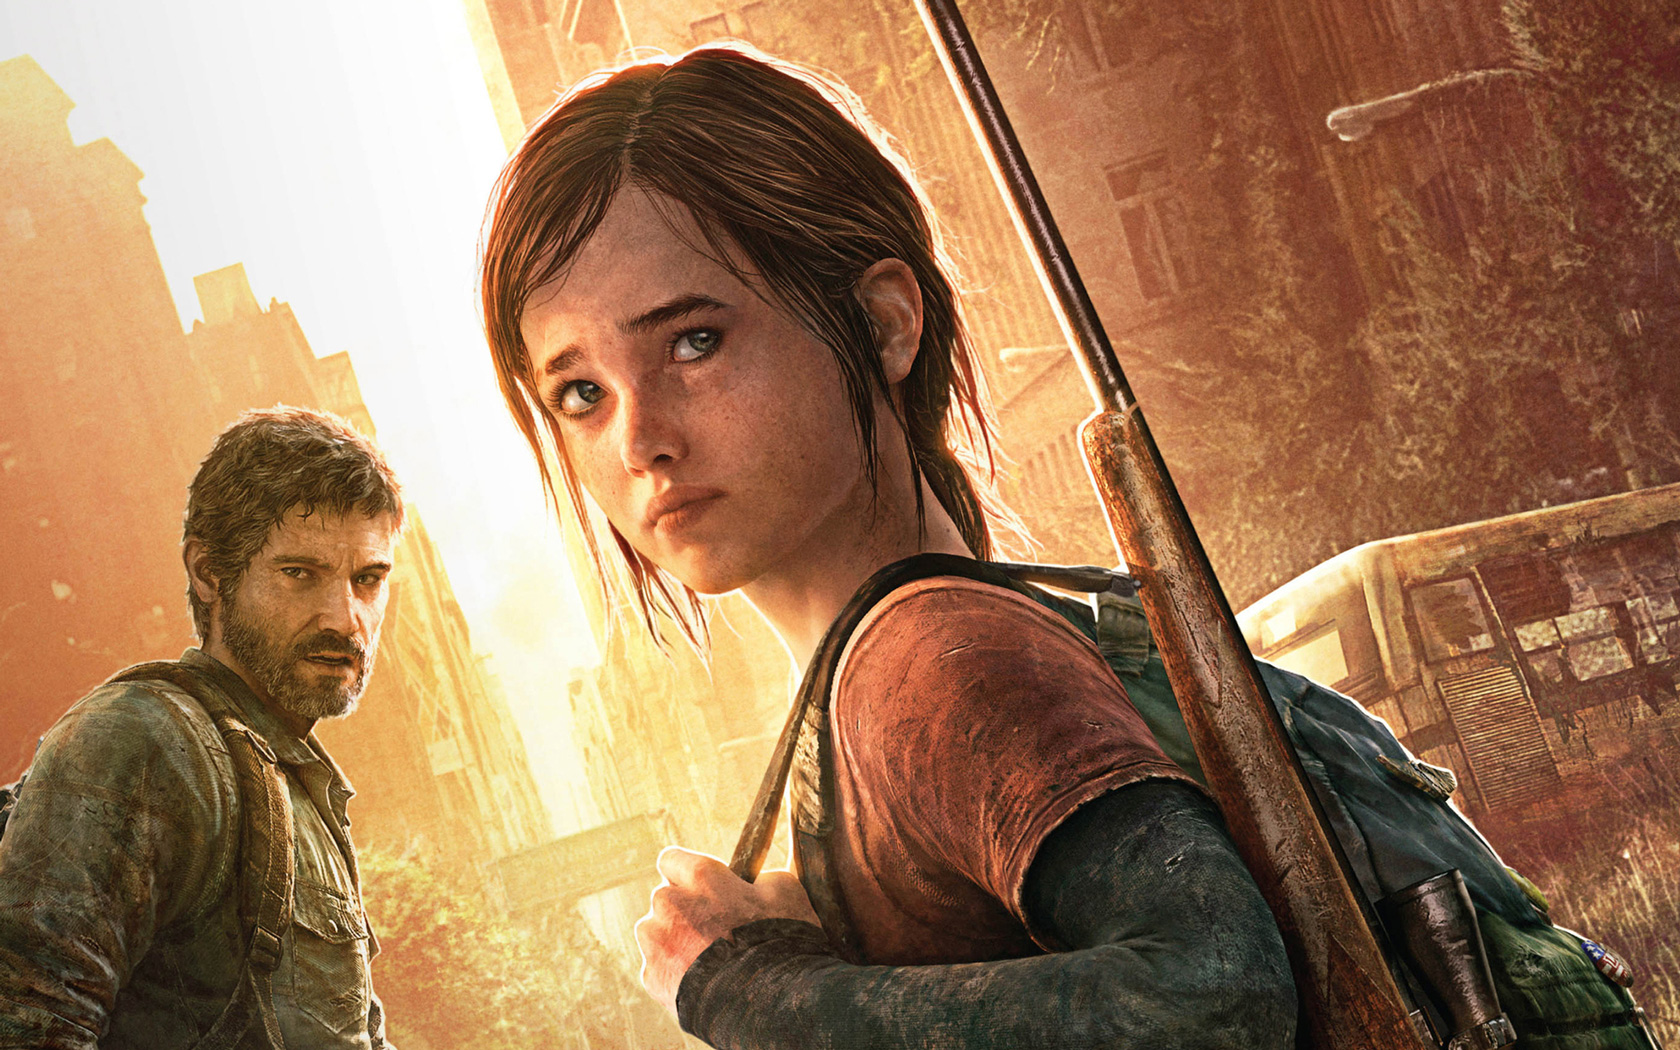 Free The Last of Us Wallpaper in 1680x1050